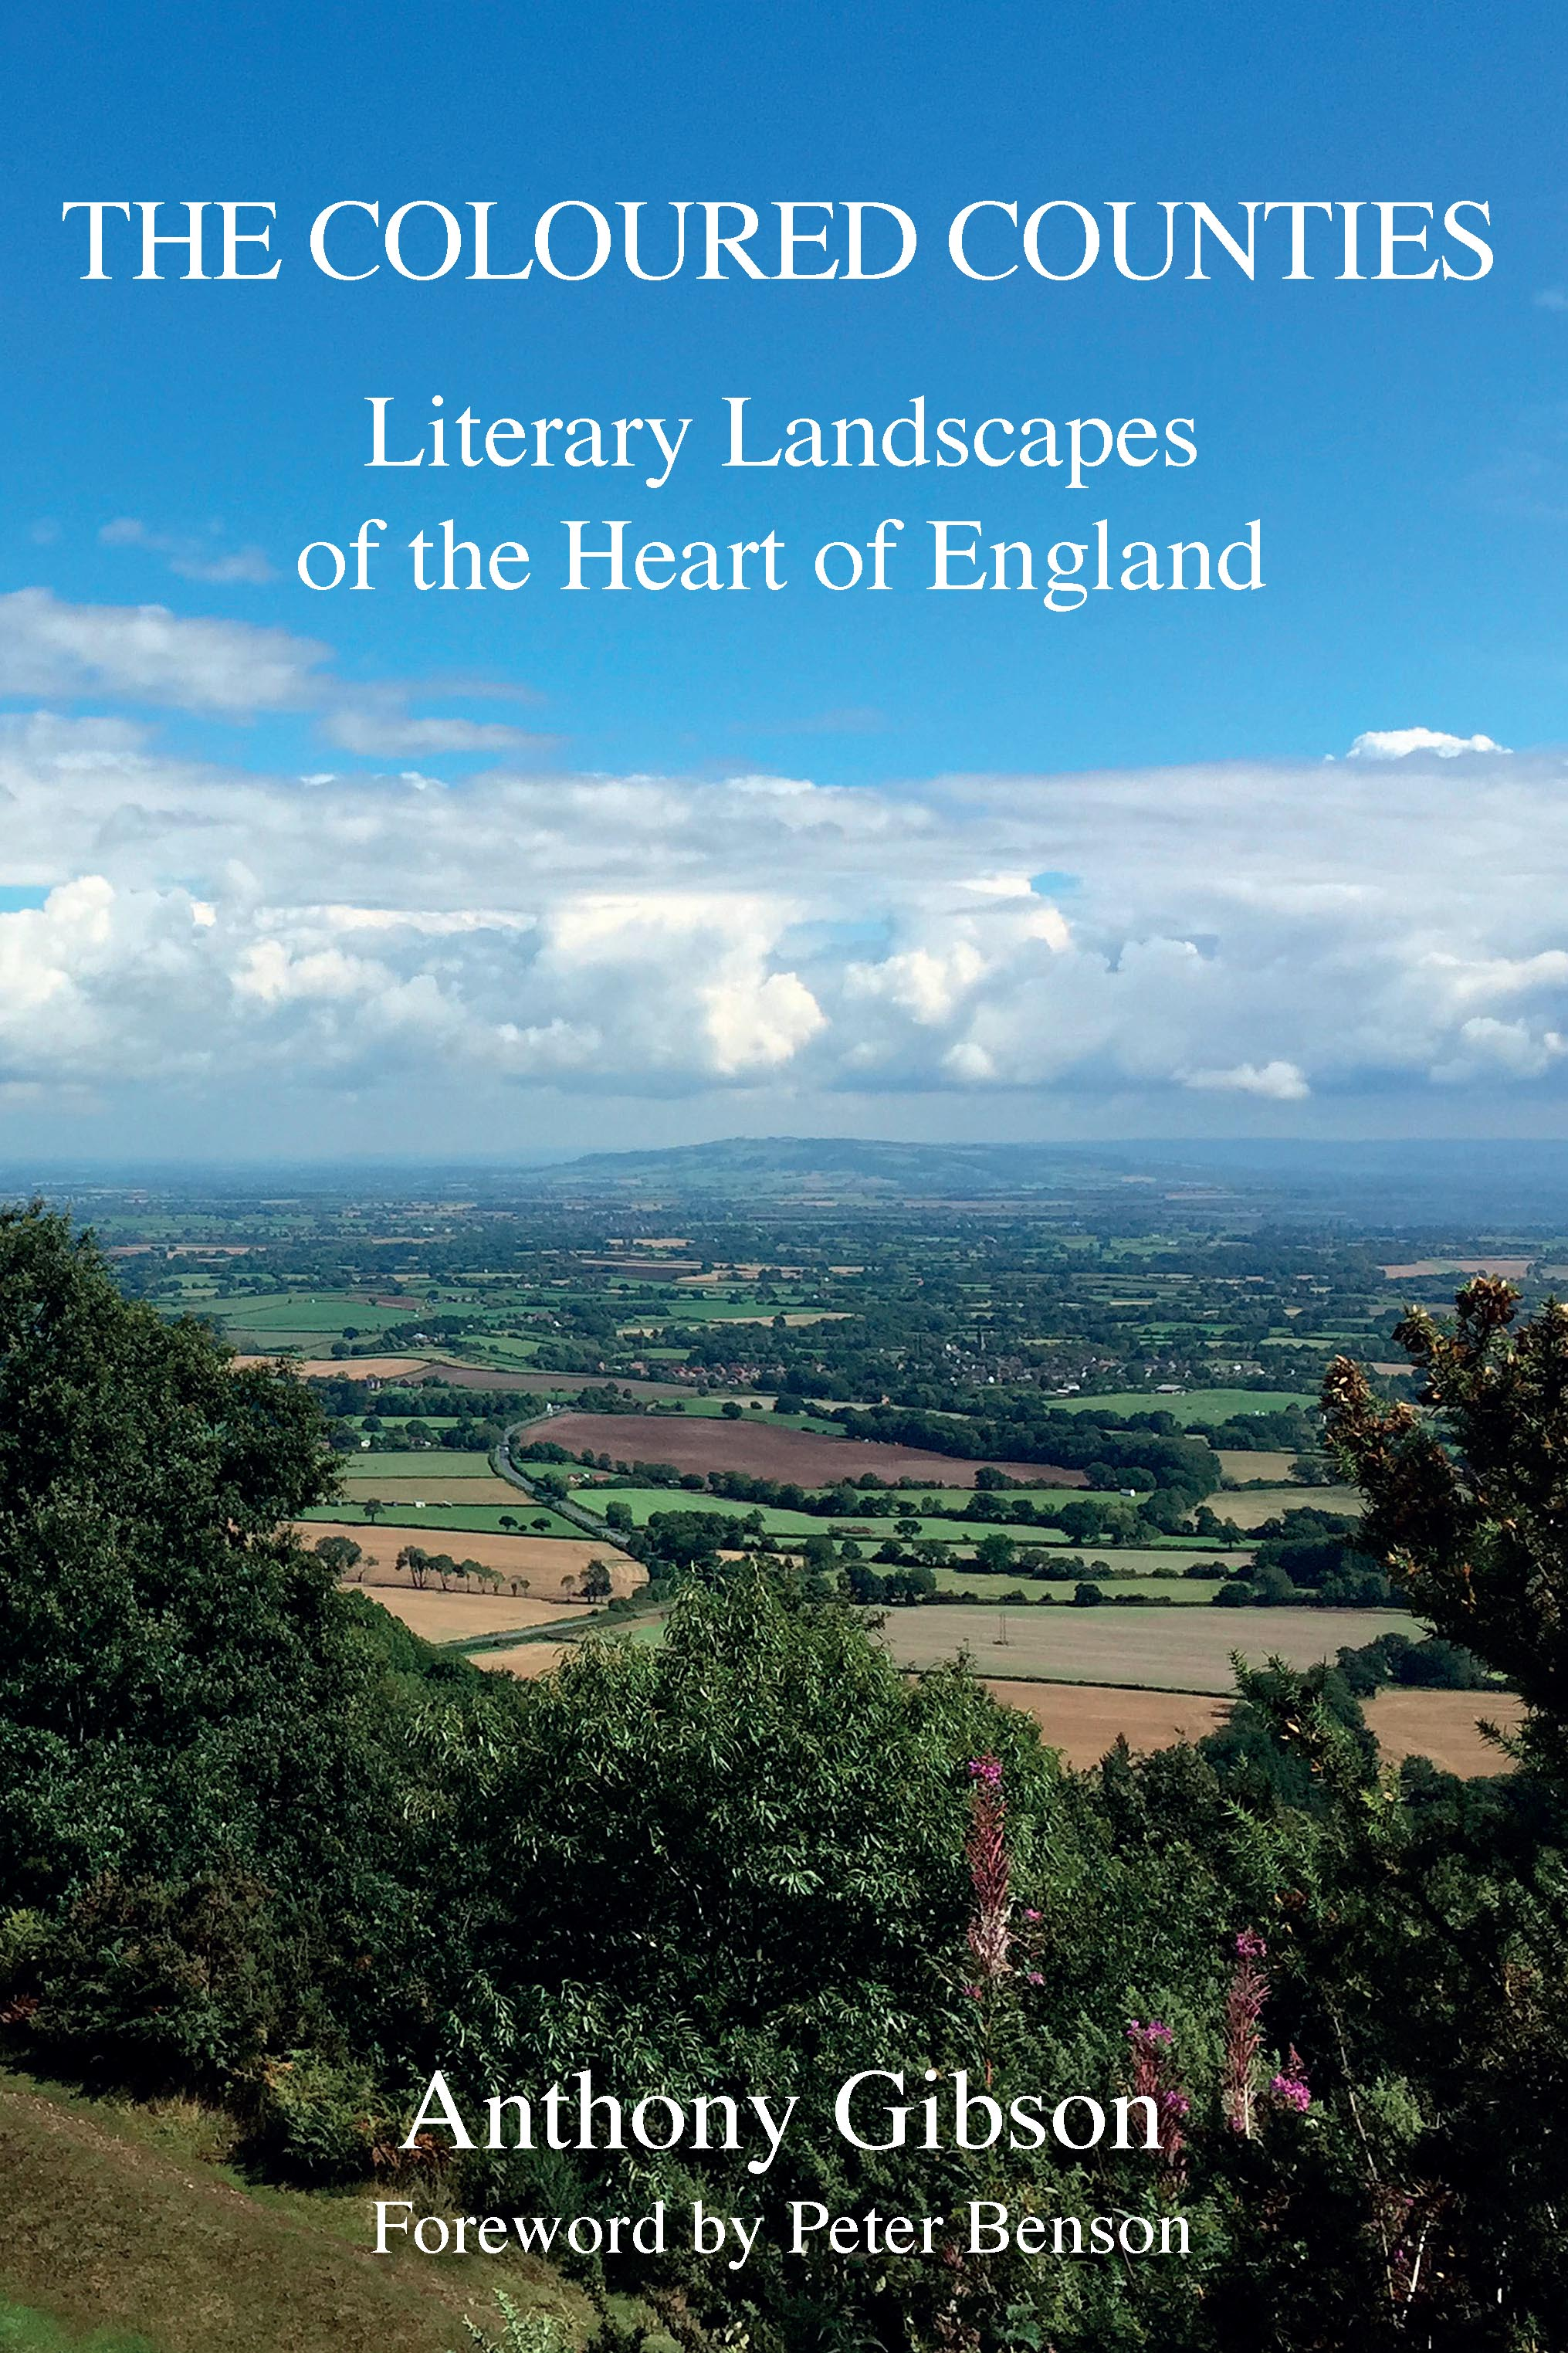 The Coloured Counties – Literary Landscapes of the Heart of England